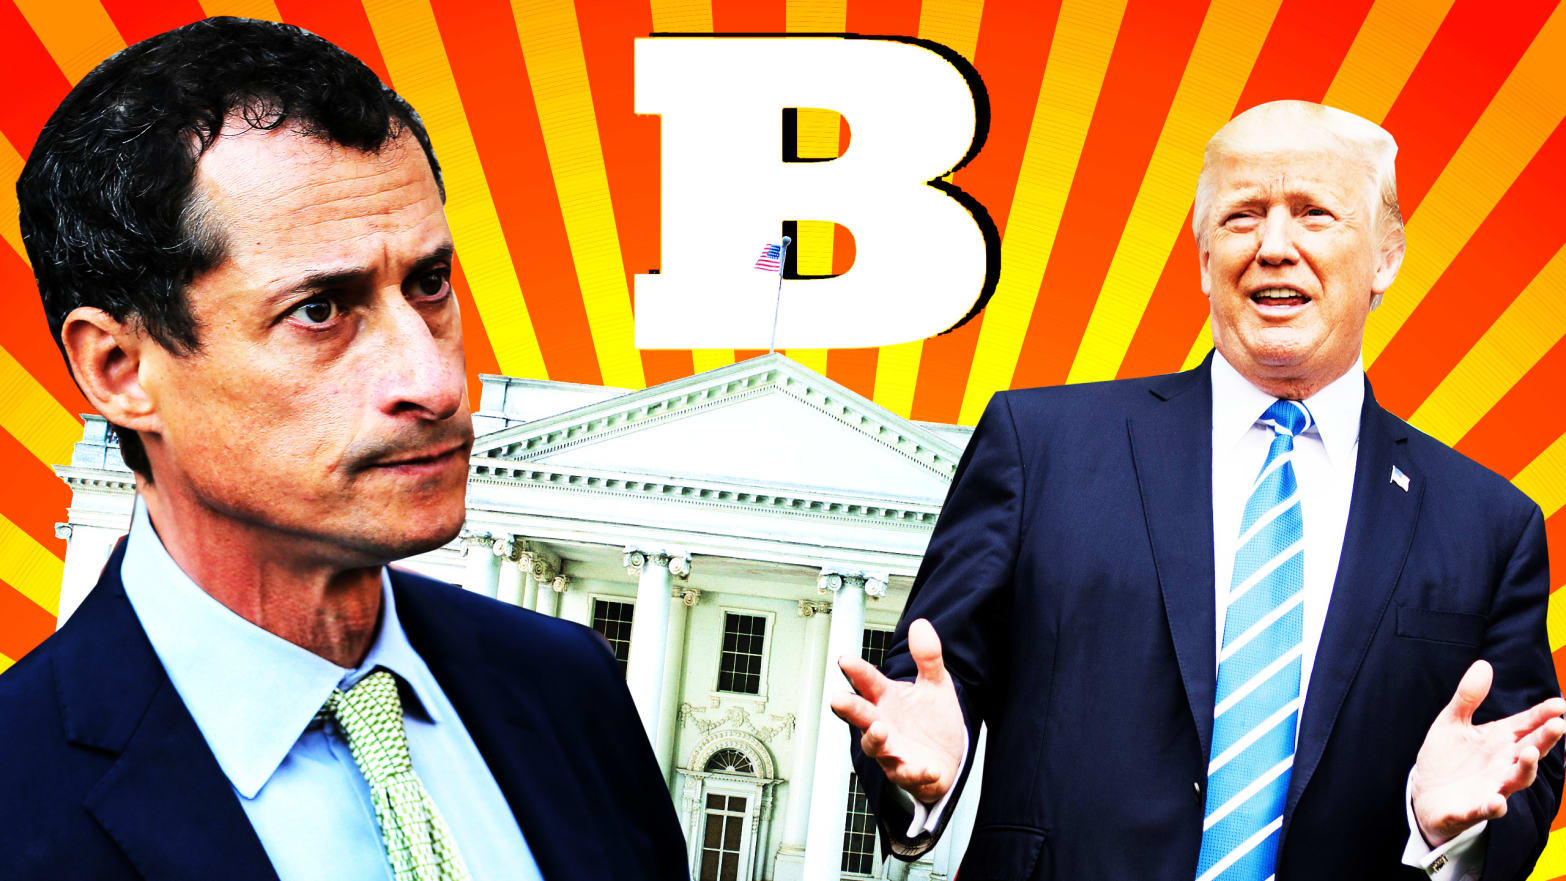 Andrew Breitbart's Photo of Anthony Weiner's Penis Helped Donald Trump Become President and Everything Is Terrible